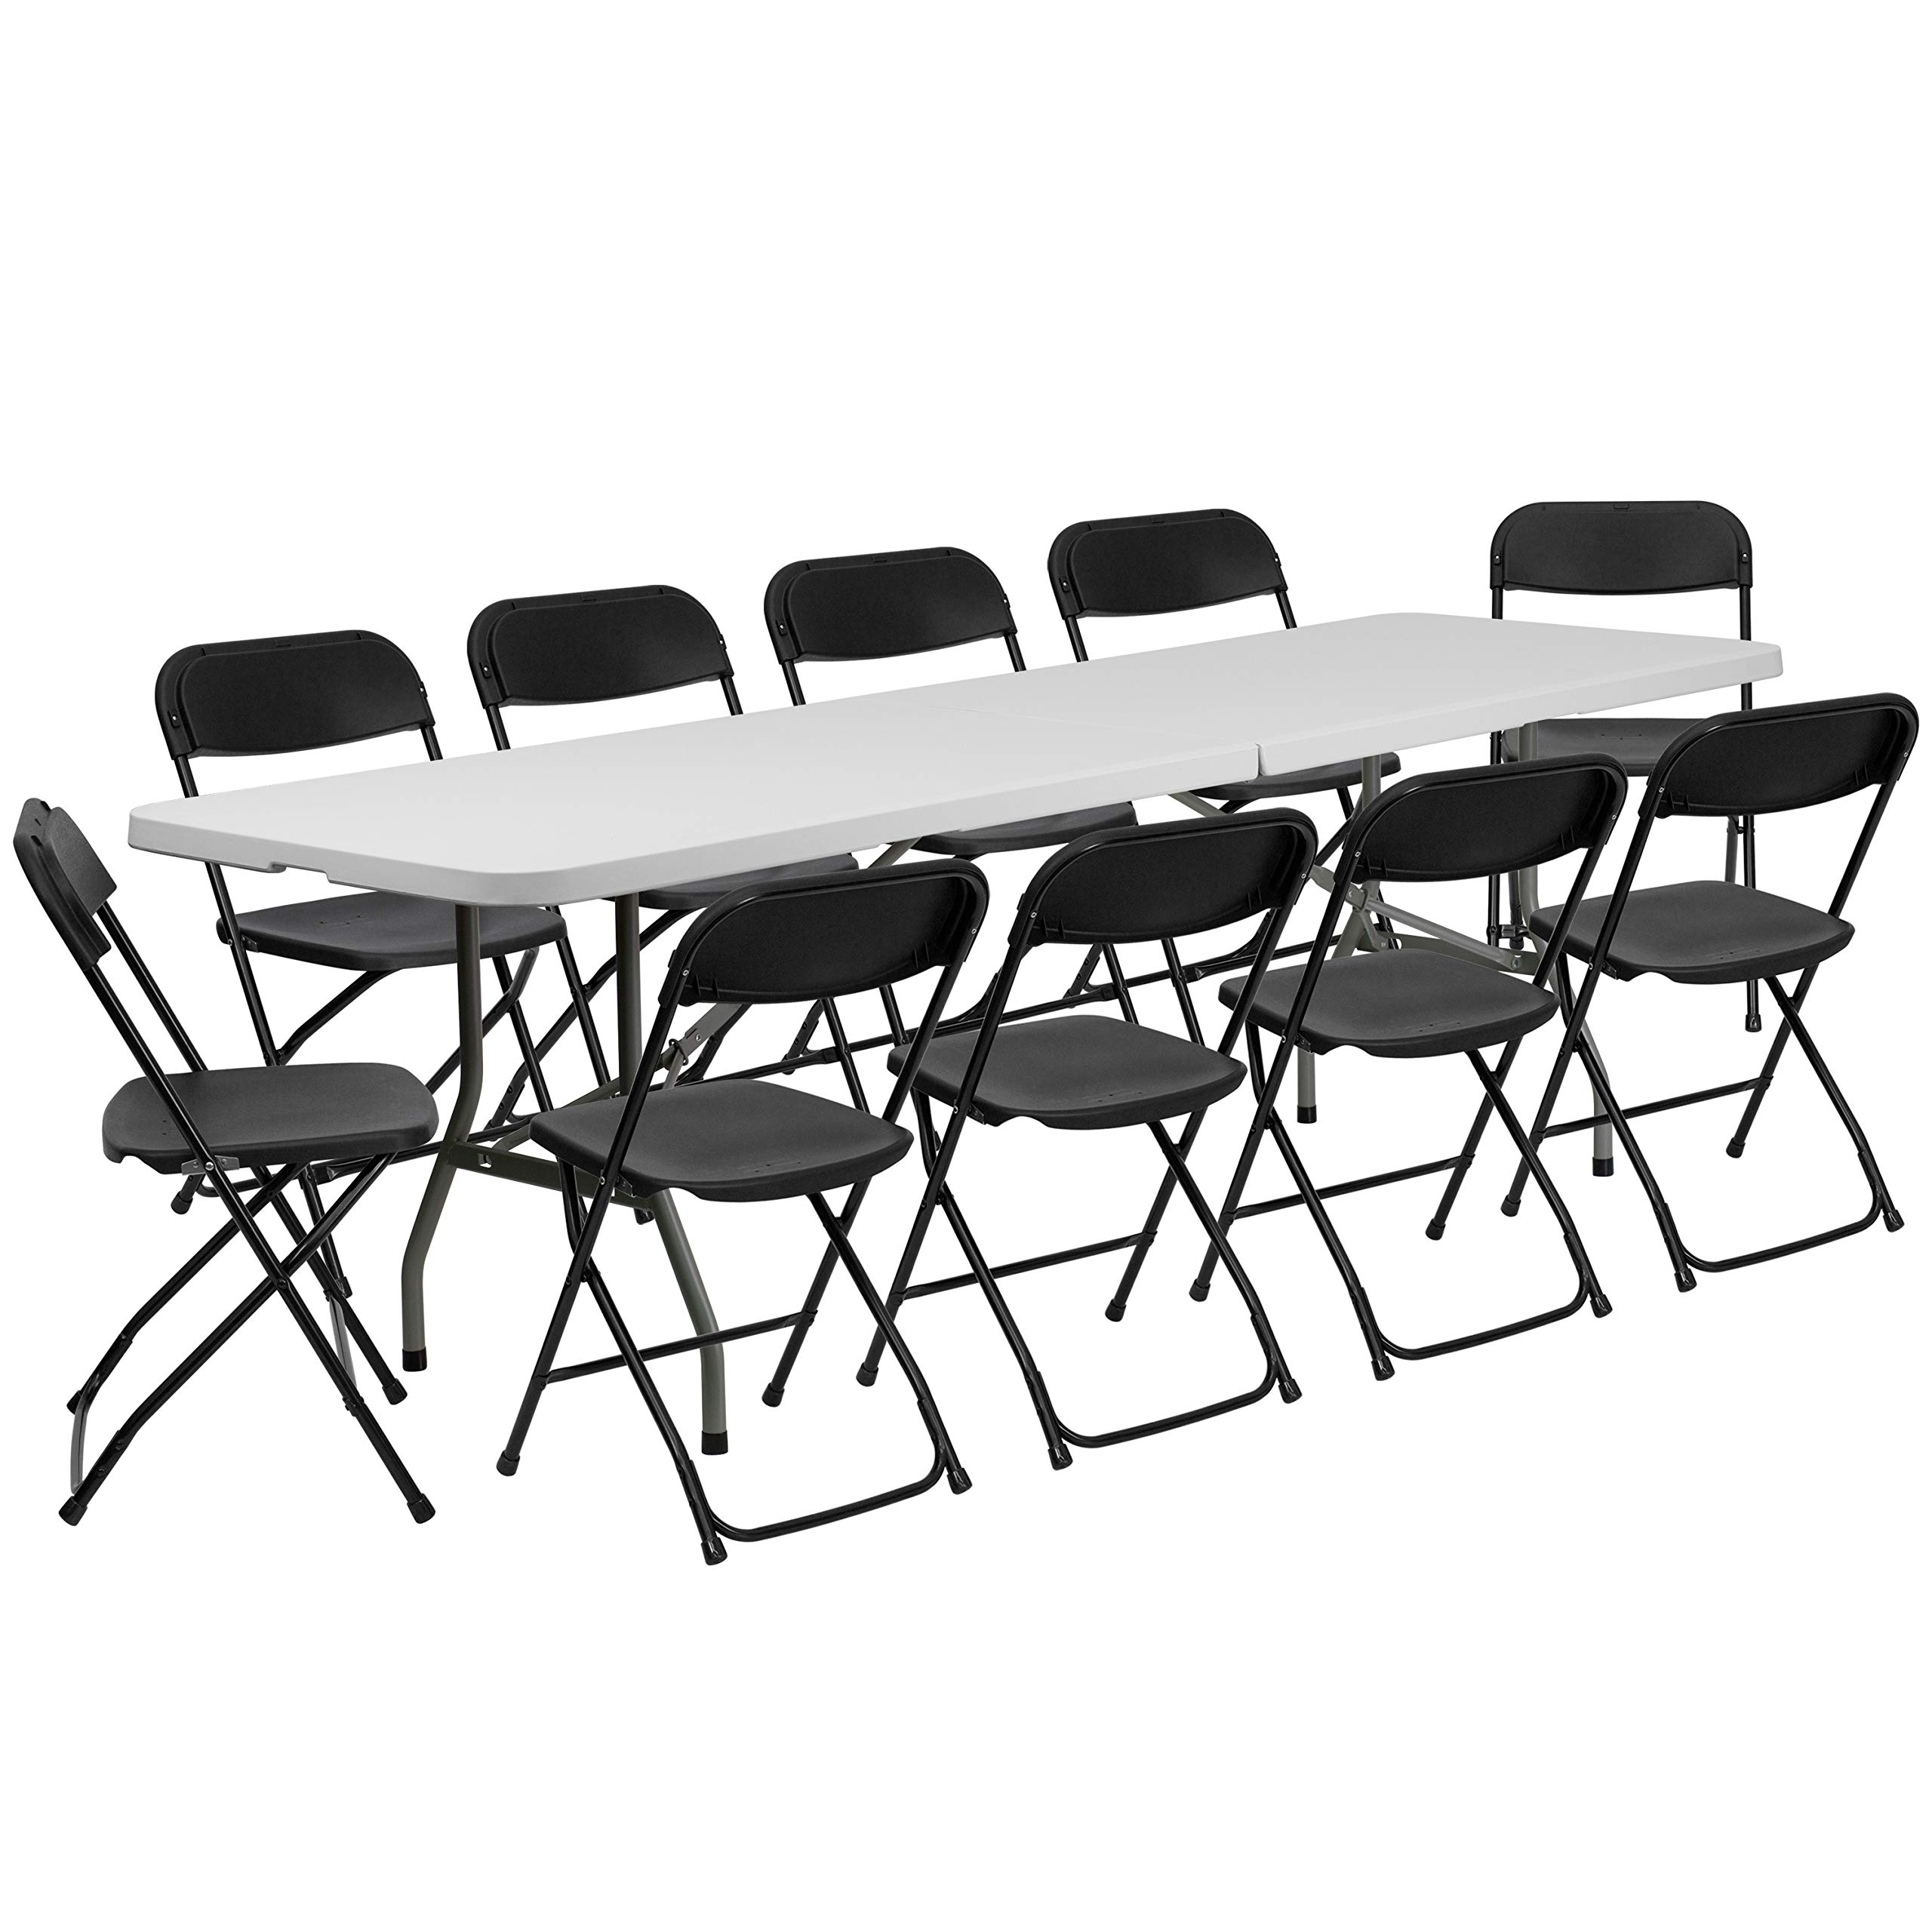 Flash Furniture 8' Bi-Fold Granite White Plastic Event/Training Folding Table Set with 10 Folding Chairs by Flash Furniture